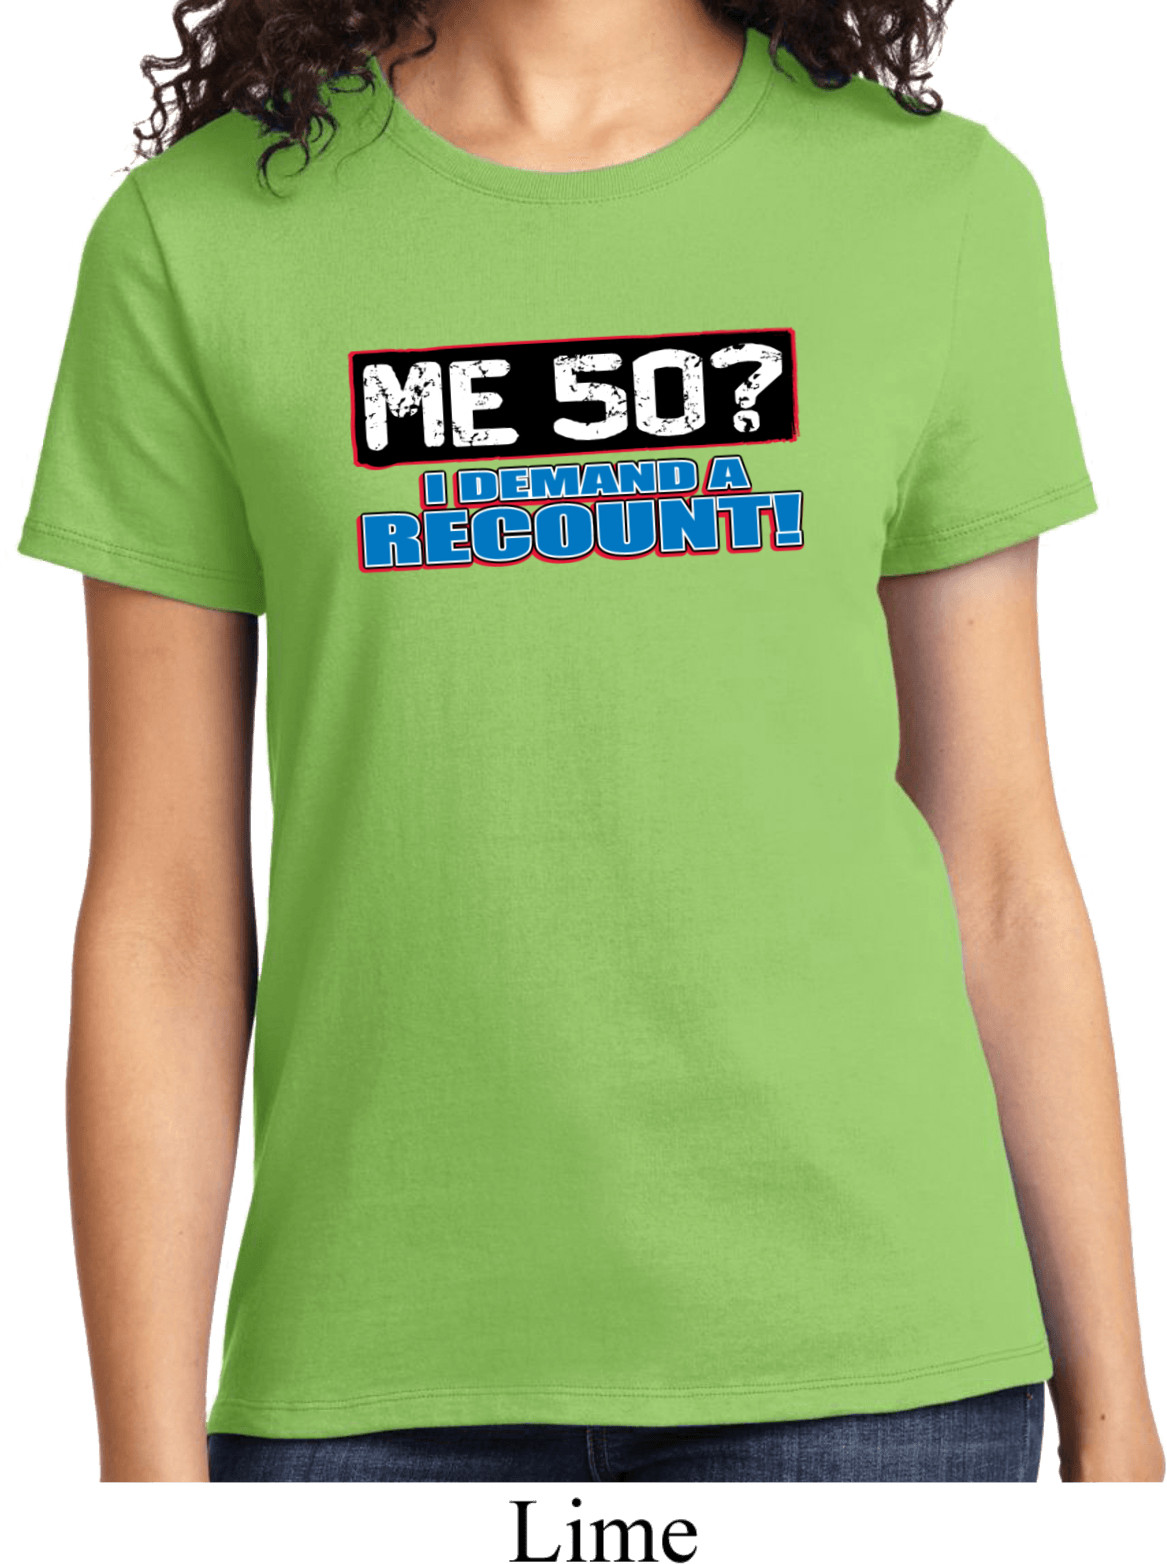 Best ideas about Funny Birthday T Shirts . Save or Pin La s Funny Birthday Shirt Me 50 Tee T Shirt Me 50 Now.